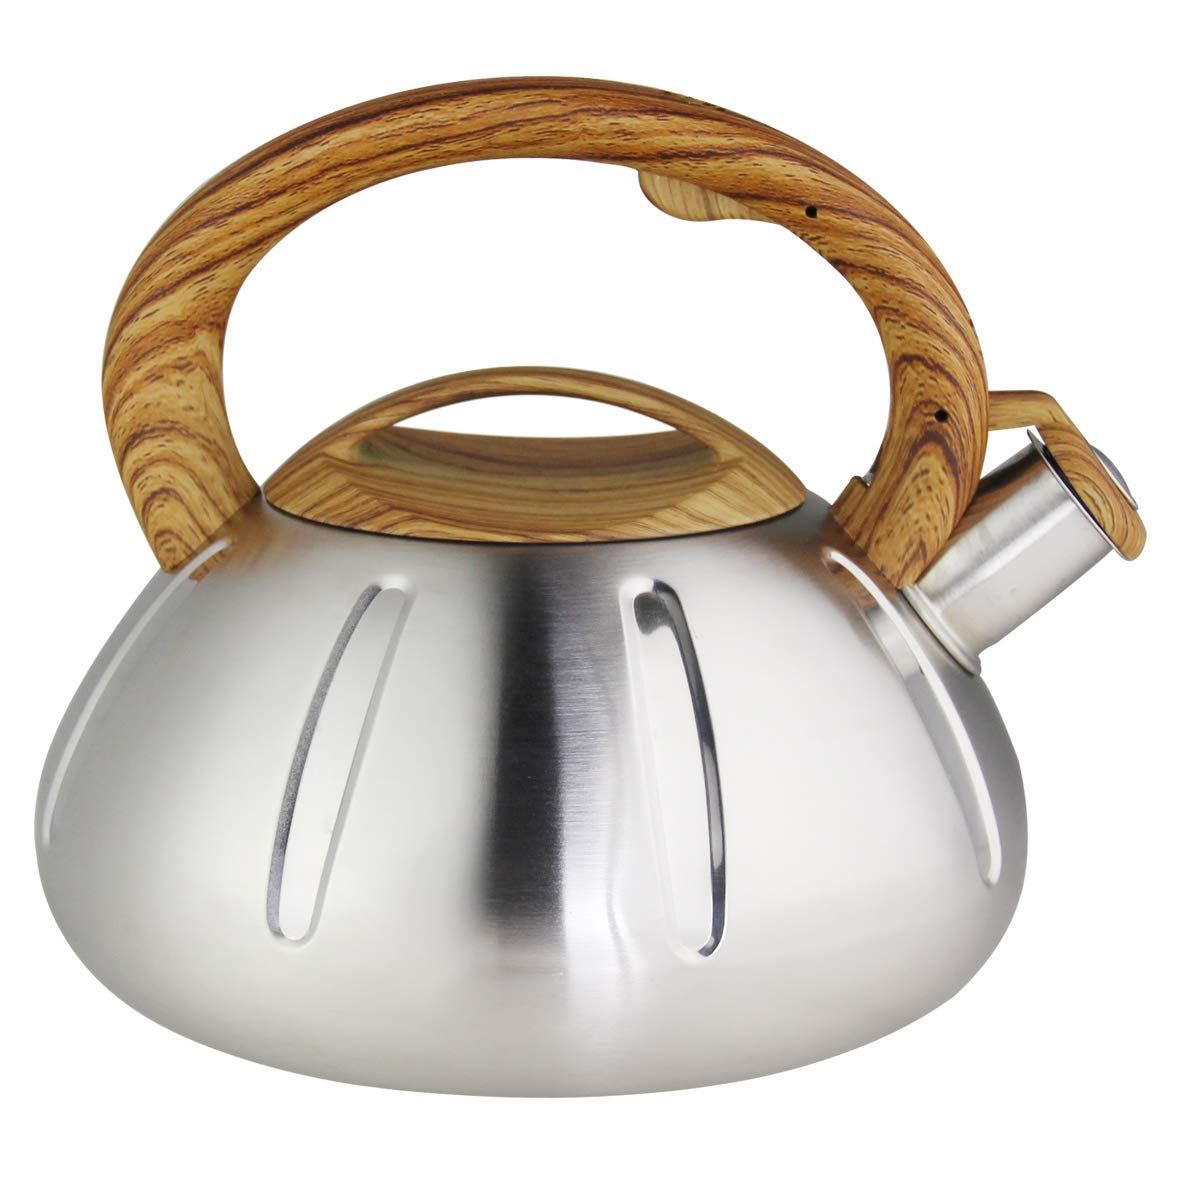 Riwendell Stainless Steel Whistling Tea Kettle 2.6-Quart StoveTop Kettle Teapot (GS-04038B-2.5L)